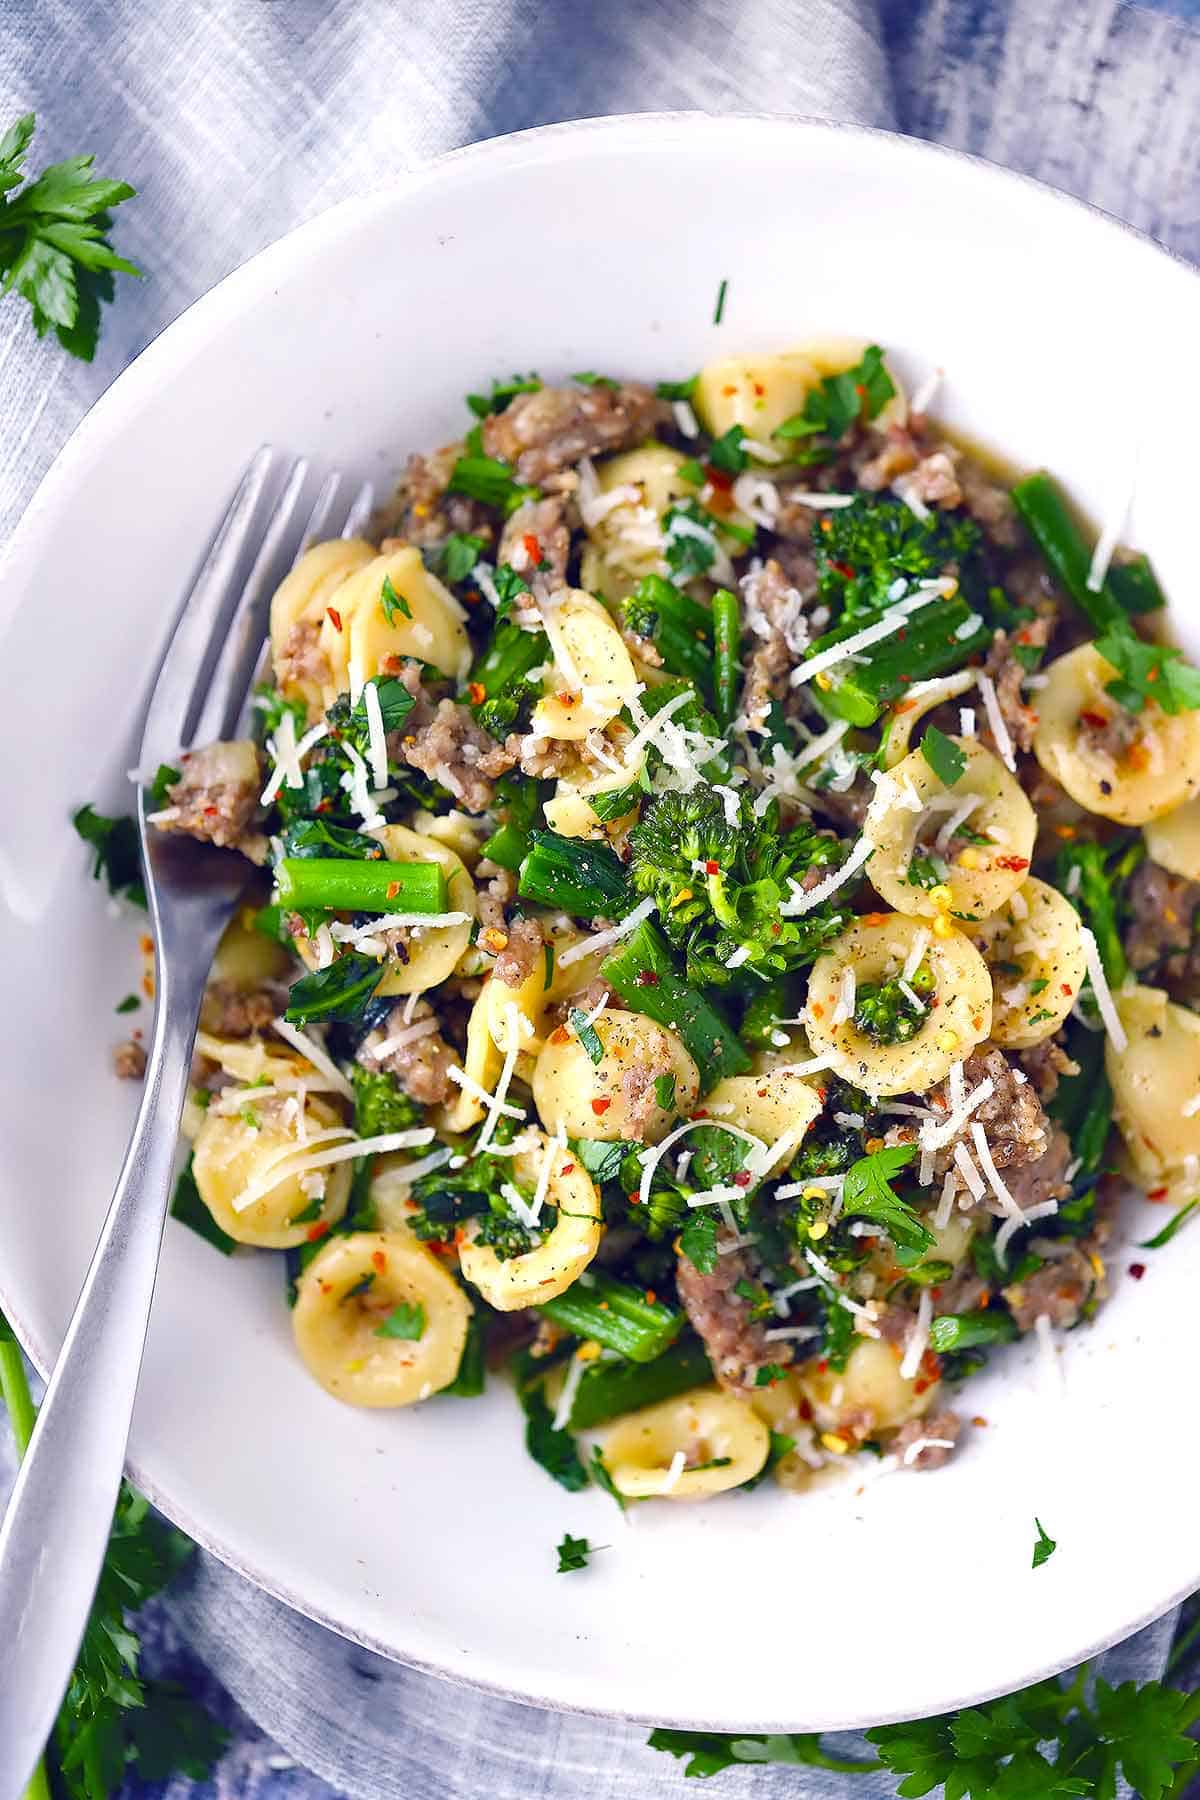 Overhead photo of a white bowl filled with orecchiette, broccolini, and sausage garnished with parmesan with a fork.